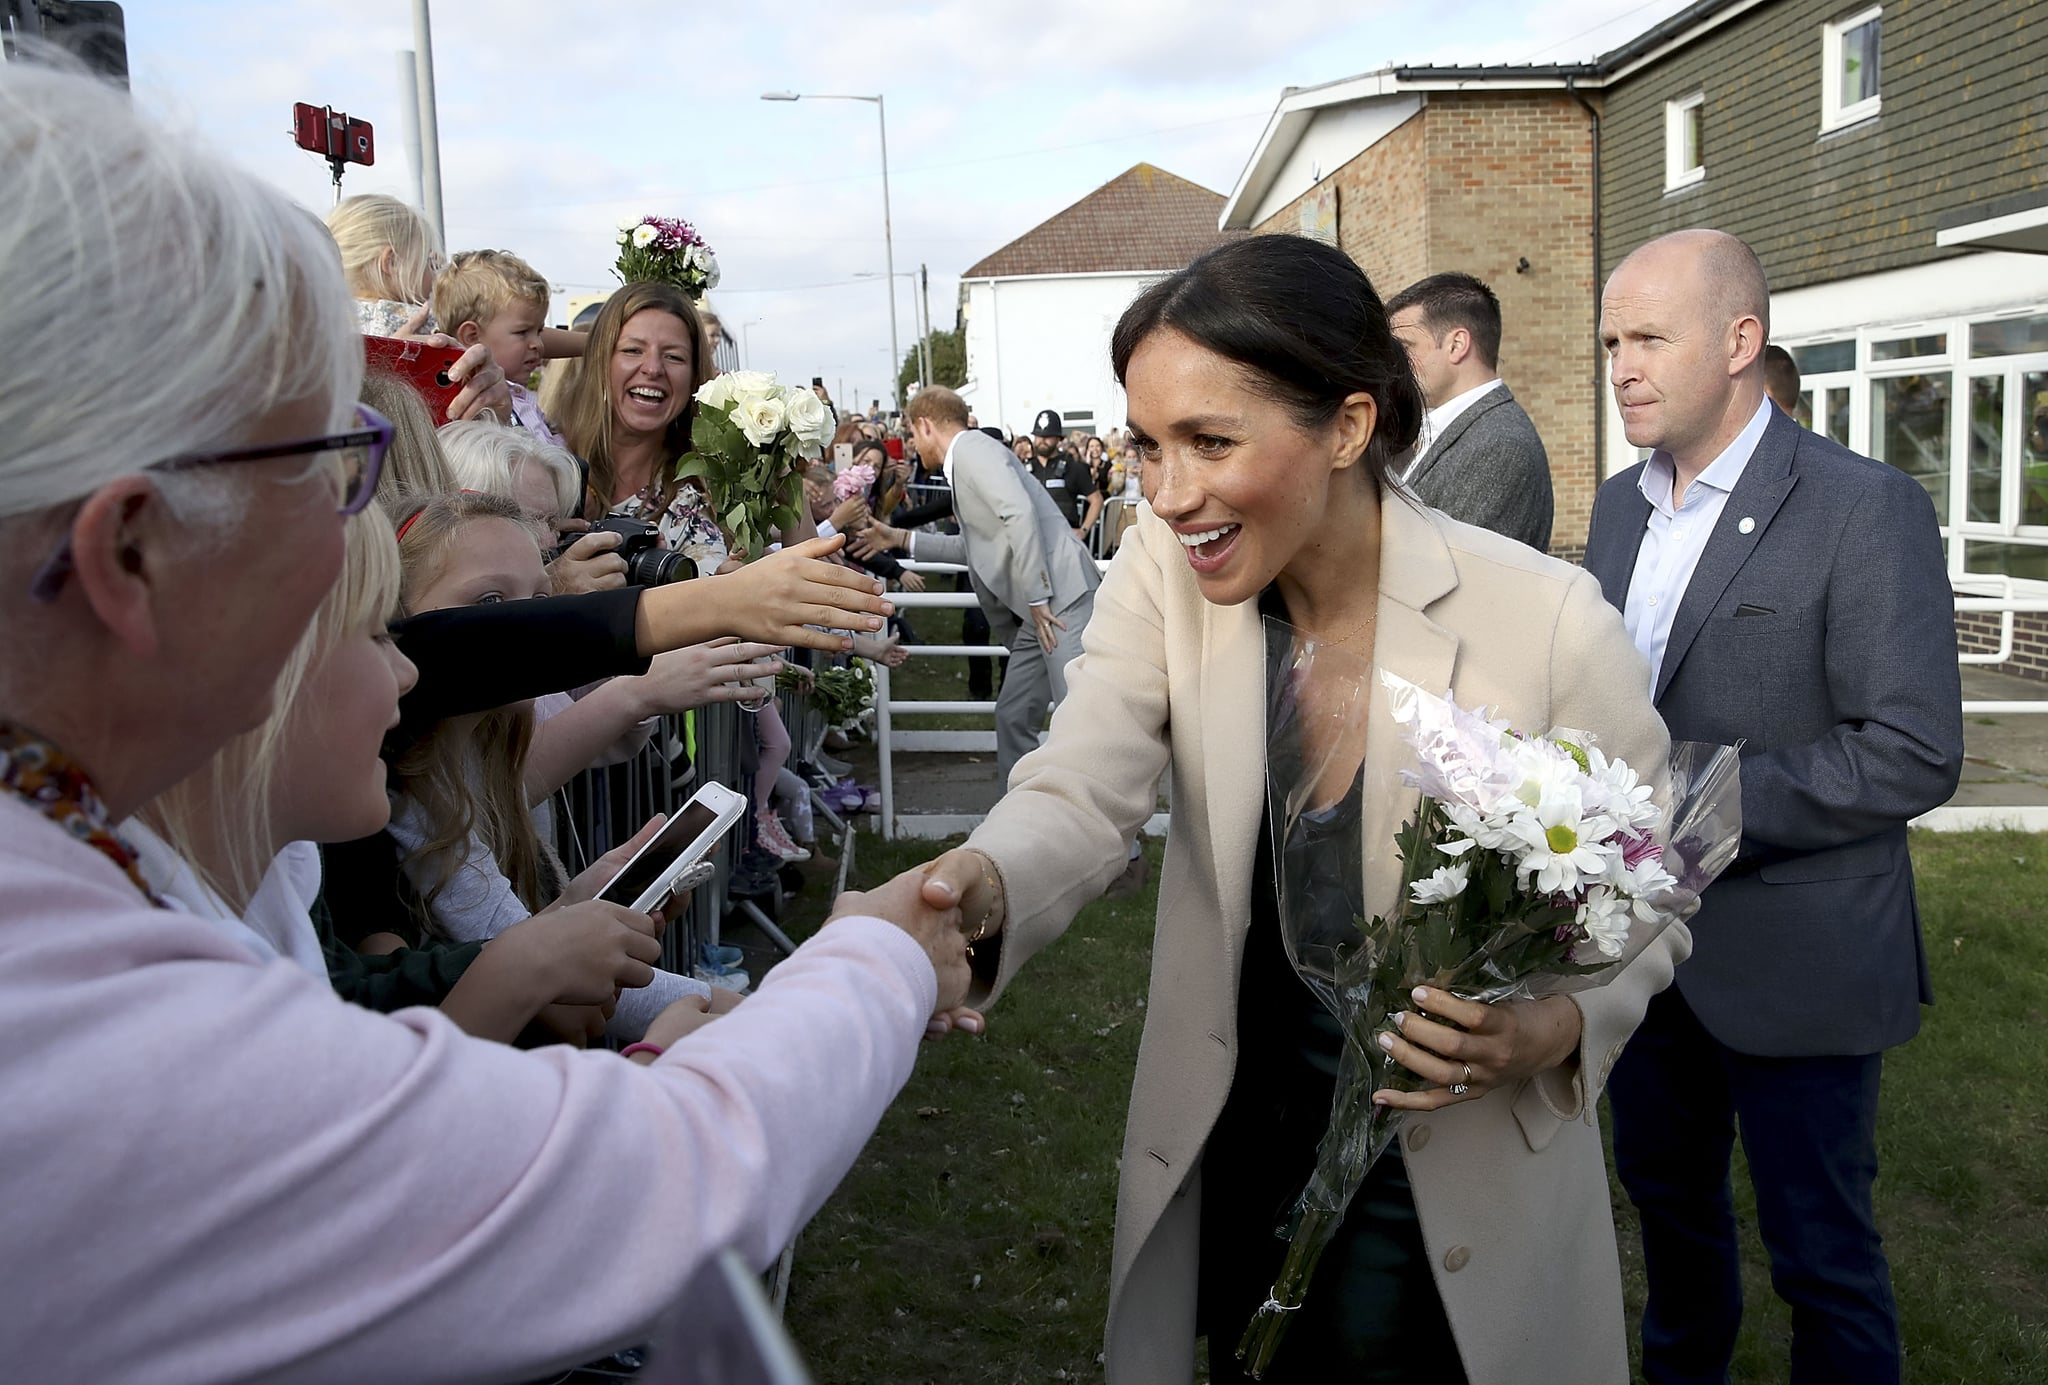 PEACEHAVEN, UNITED KINGDOM - OCTOBER 03:  Meghan, Duchess of Sussex makes an official visit to the Joff Youth Centre in Peacehaven, Sussex on October 3, 2018 in Peacehaven, United Kingdom. The Duke and Duchess married on May 19th 2018 in Windsor and were conferred The Duke & Duchess of Sussex by The Queen.  (Photo by Chris Jackson/Getty Images)